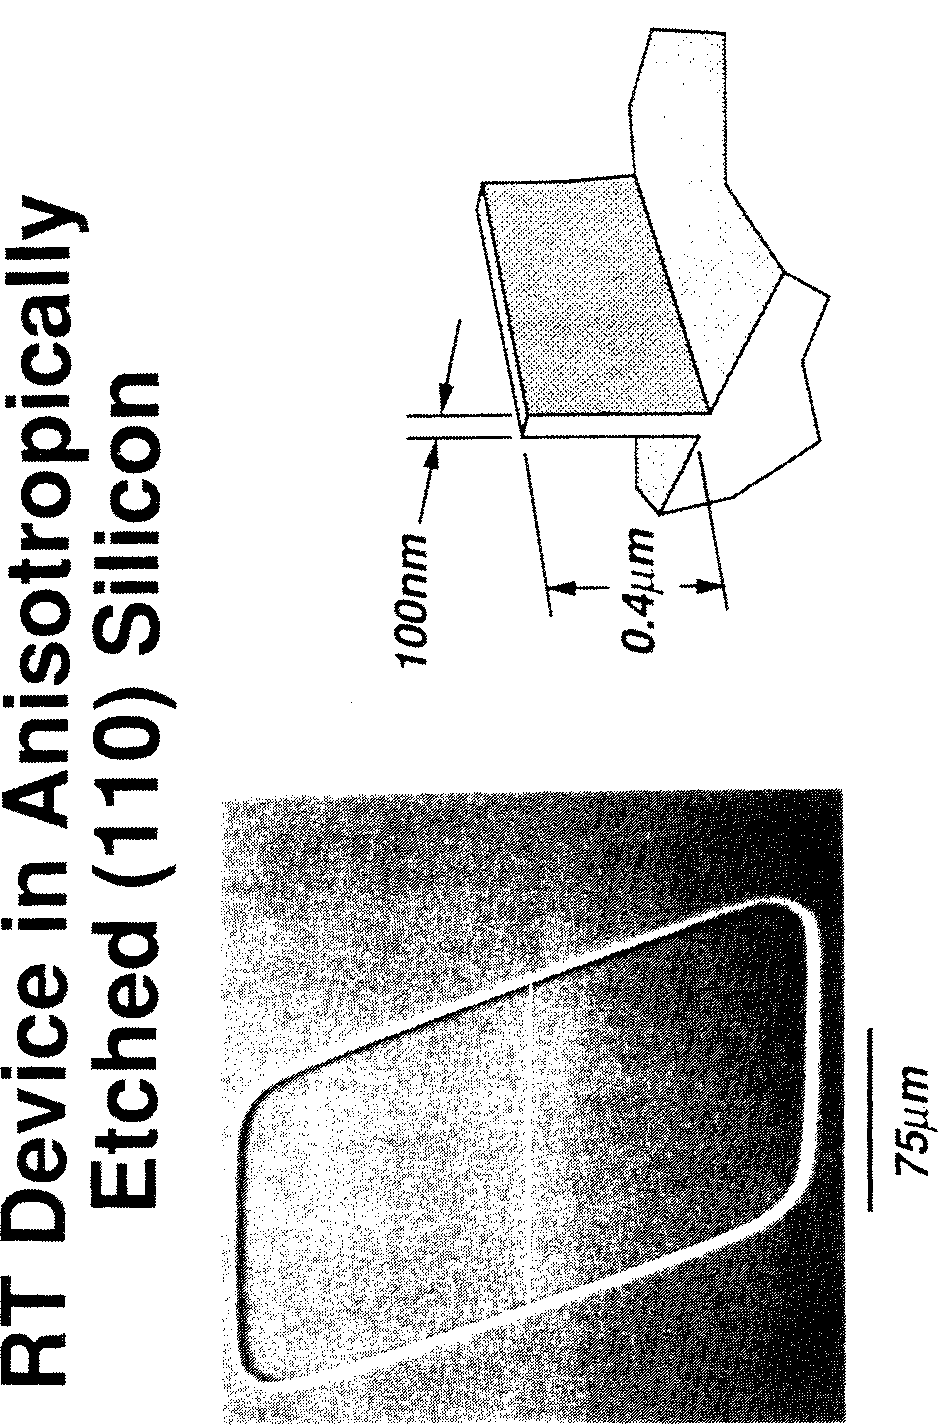 Figure C.6: First level patterning of a resonant tunneling device [91,92]. The